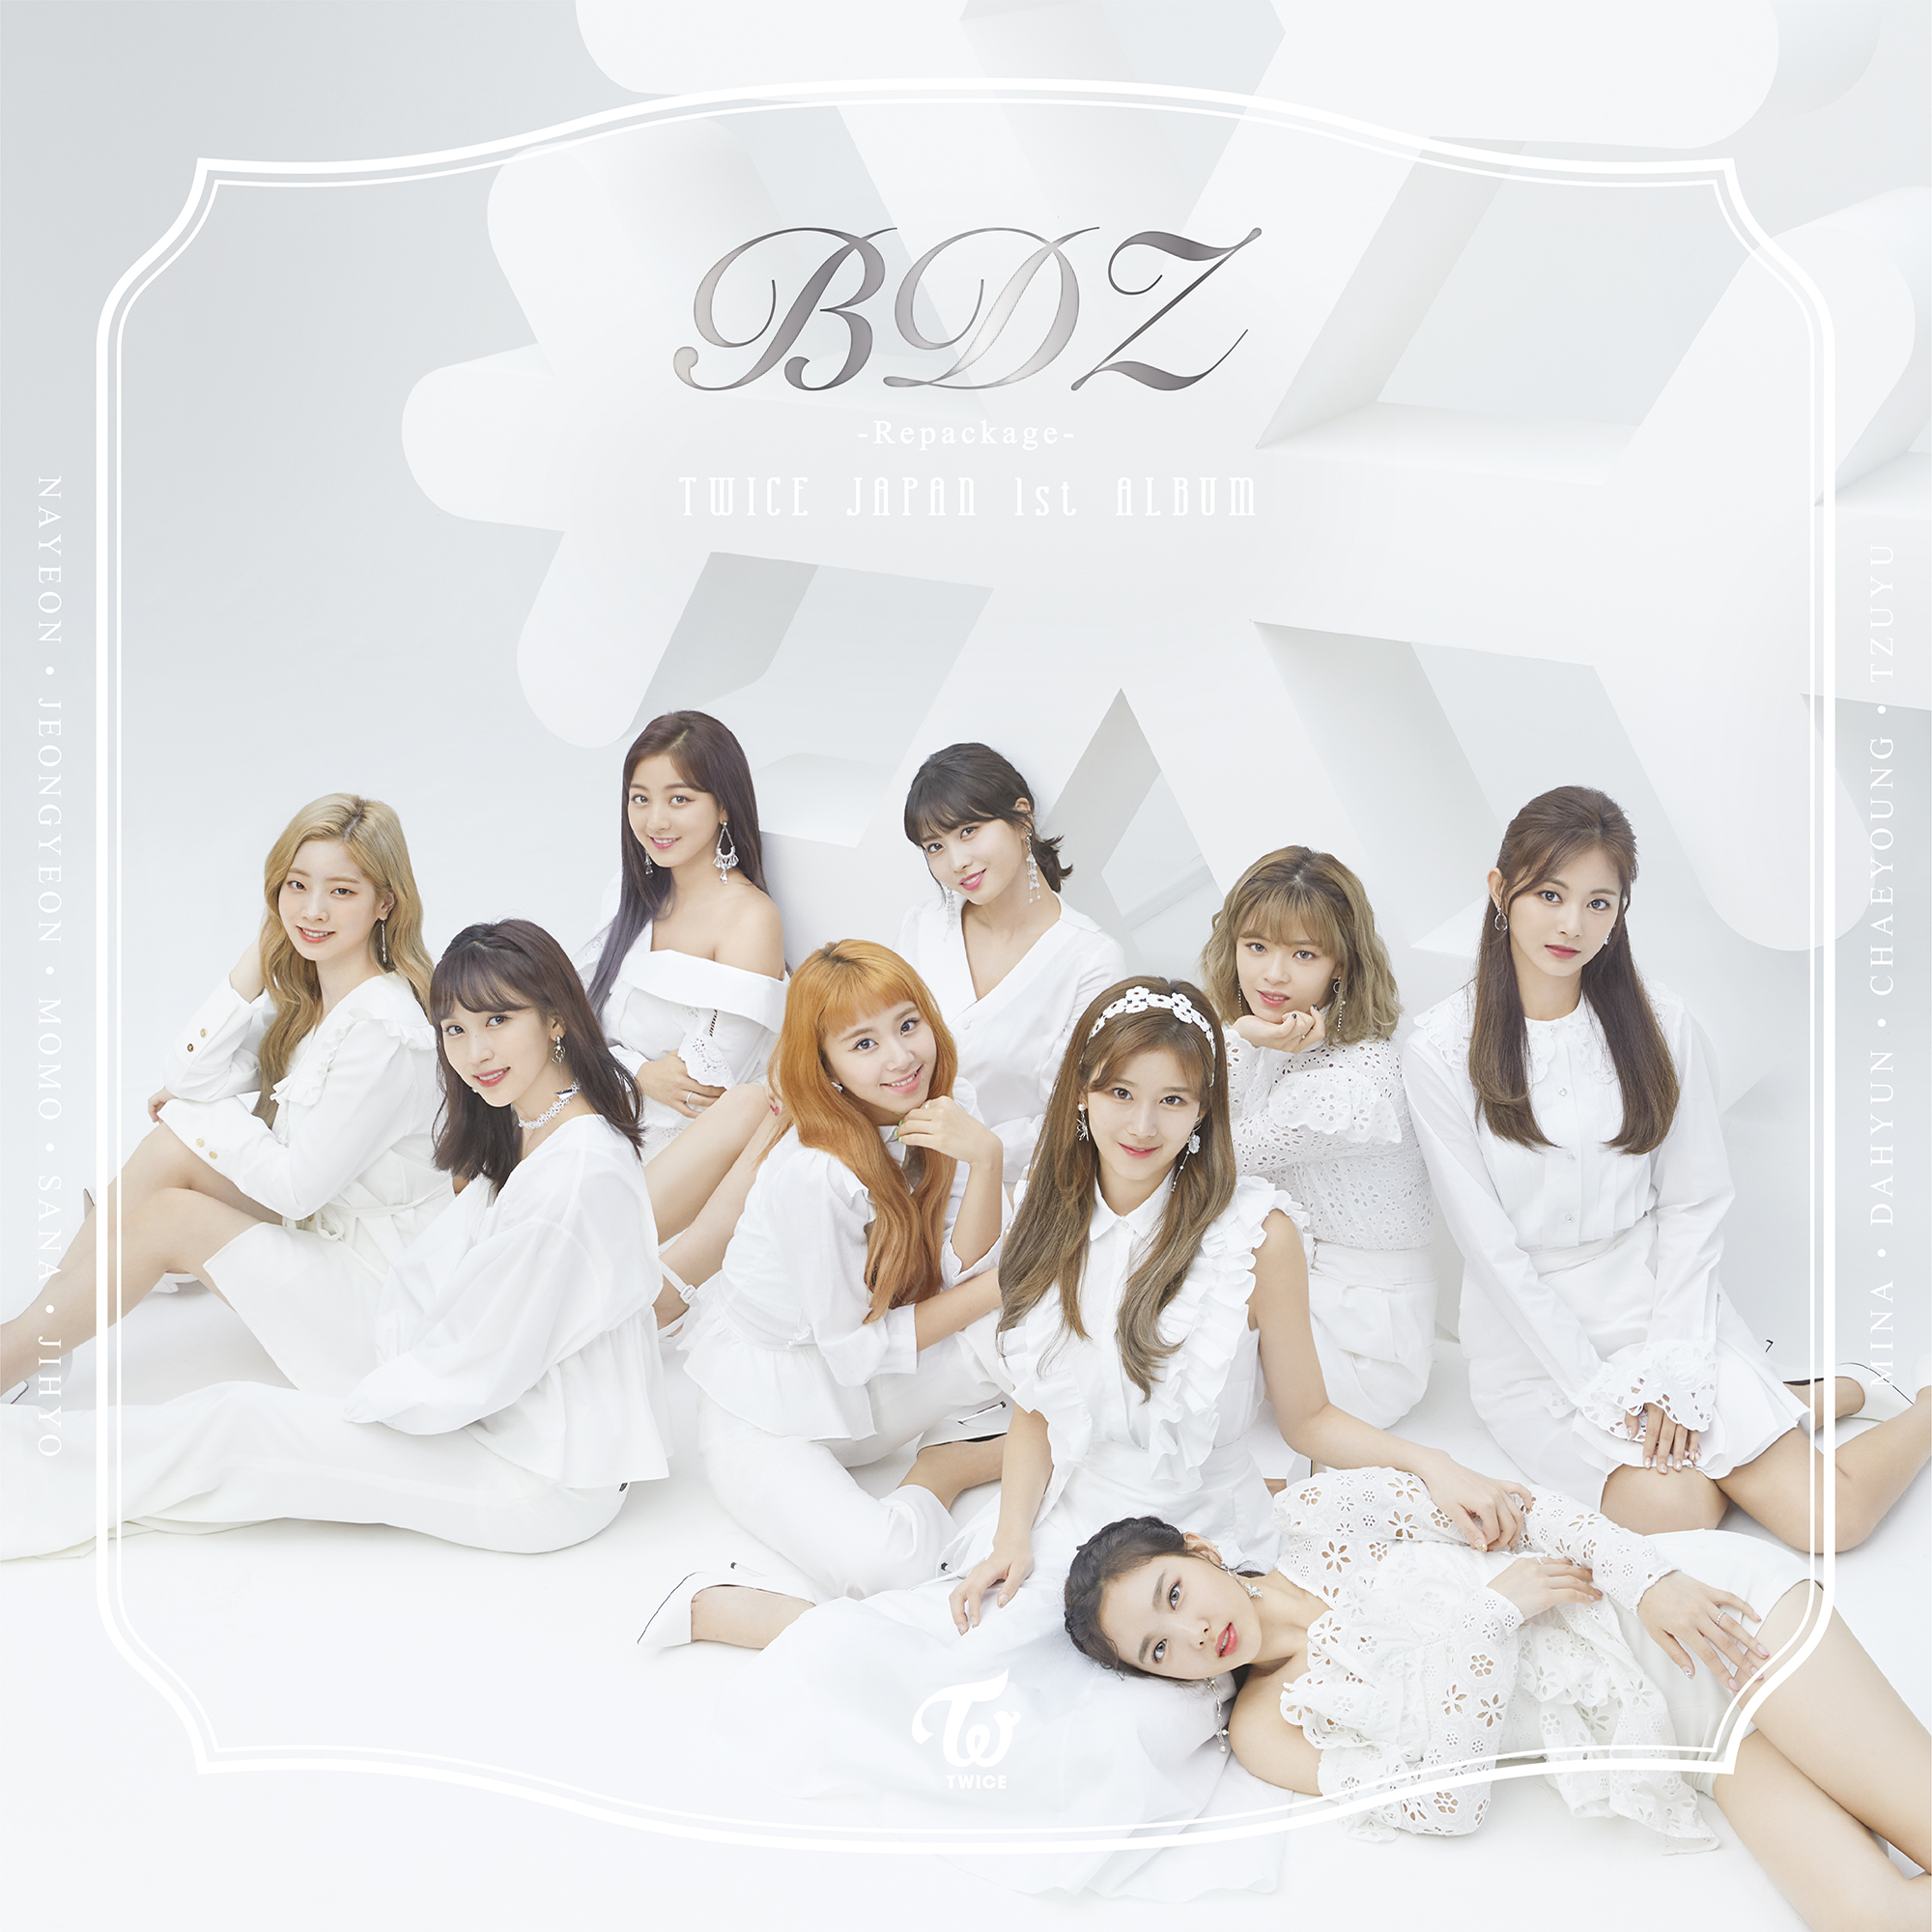 TWICE BDZ -Repackage- regular edition cover art.png